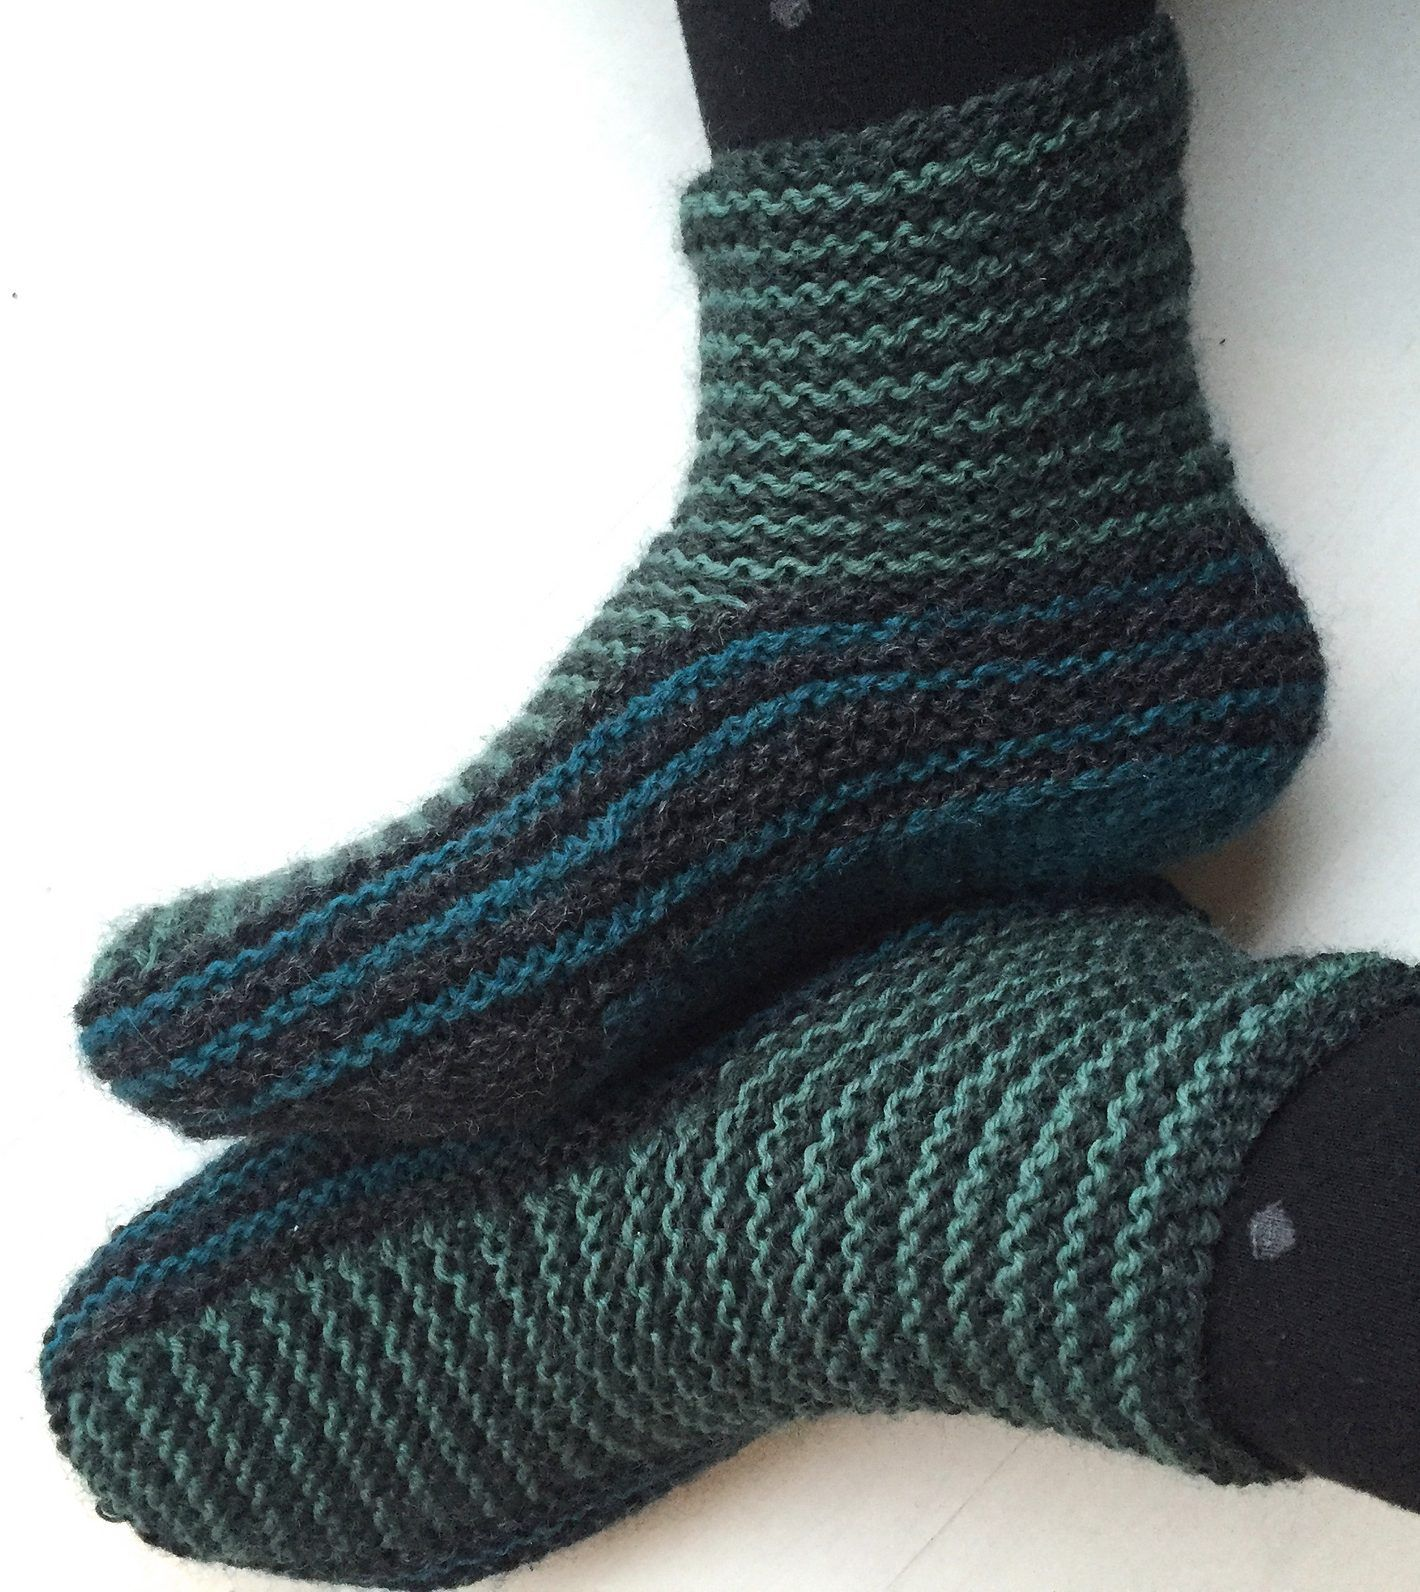 Knit Slippers Pattern : Free Knitting Pattern for Grown-Up Garter Booties - Maria ...